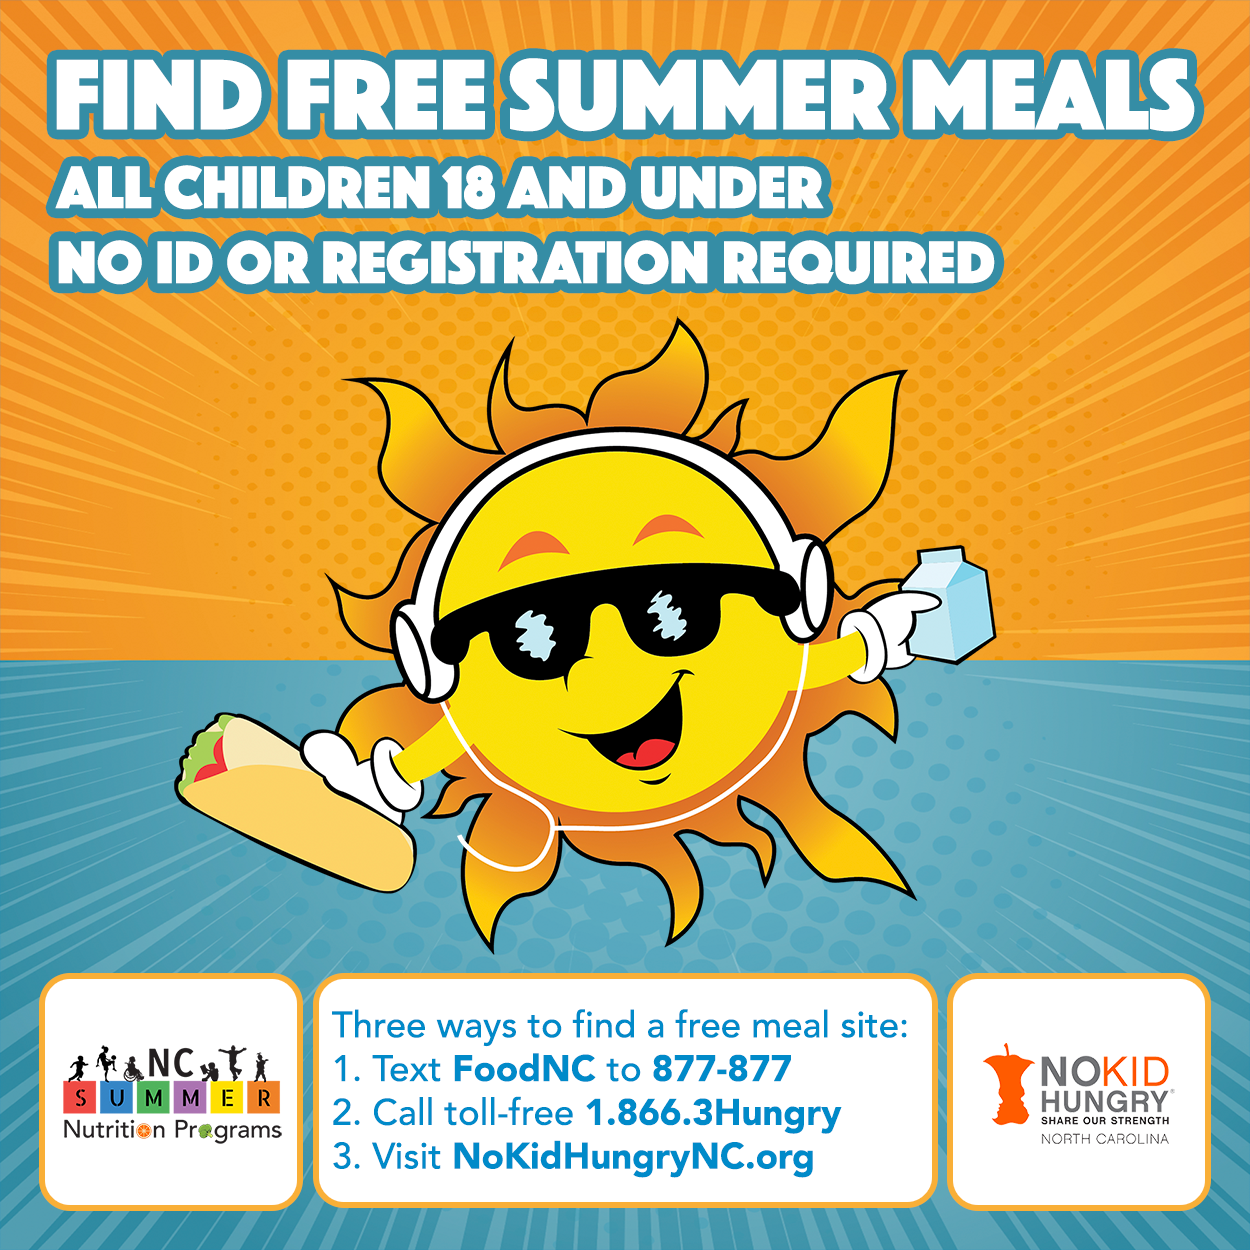 Summer Meals site  http://nokidhungrync.org/find-a-free-summer-meals-site-near-you/